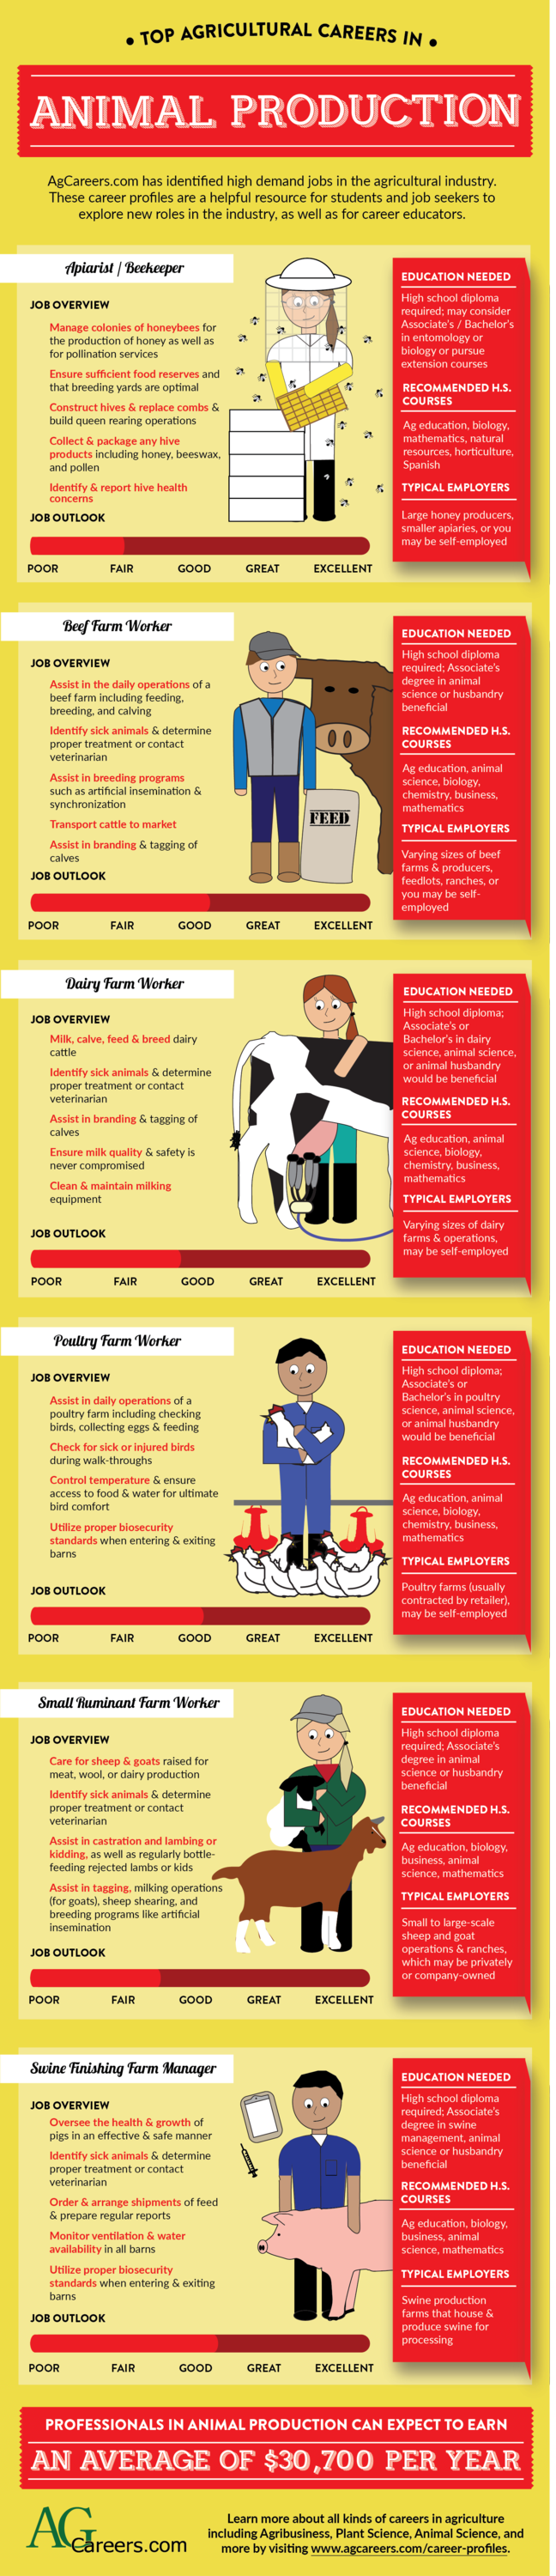 careers in animal production